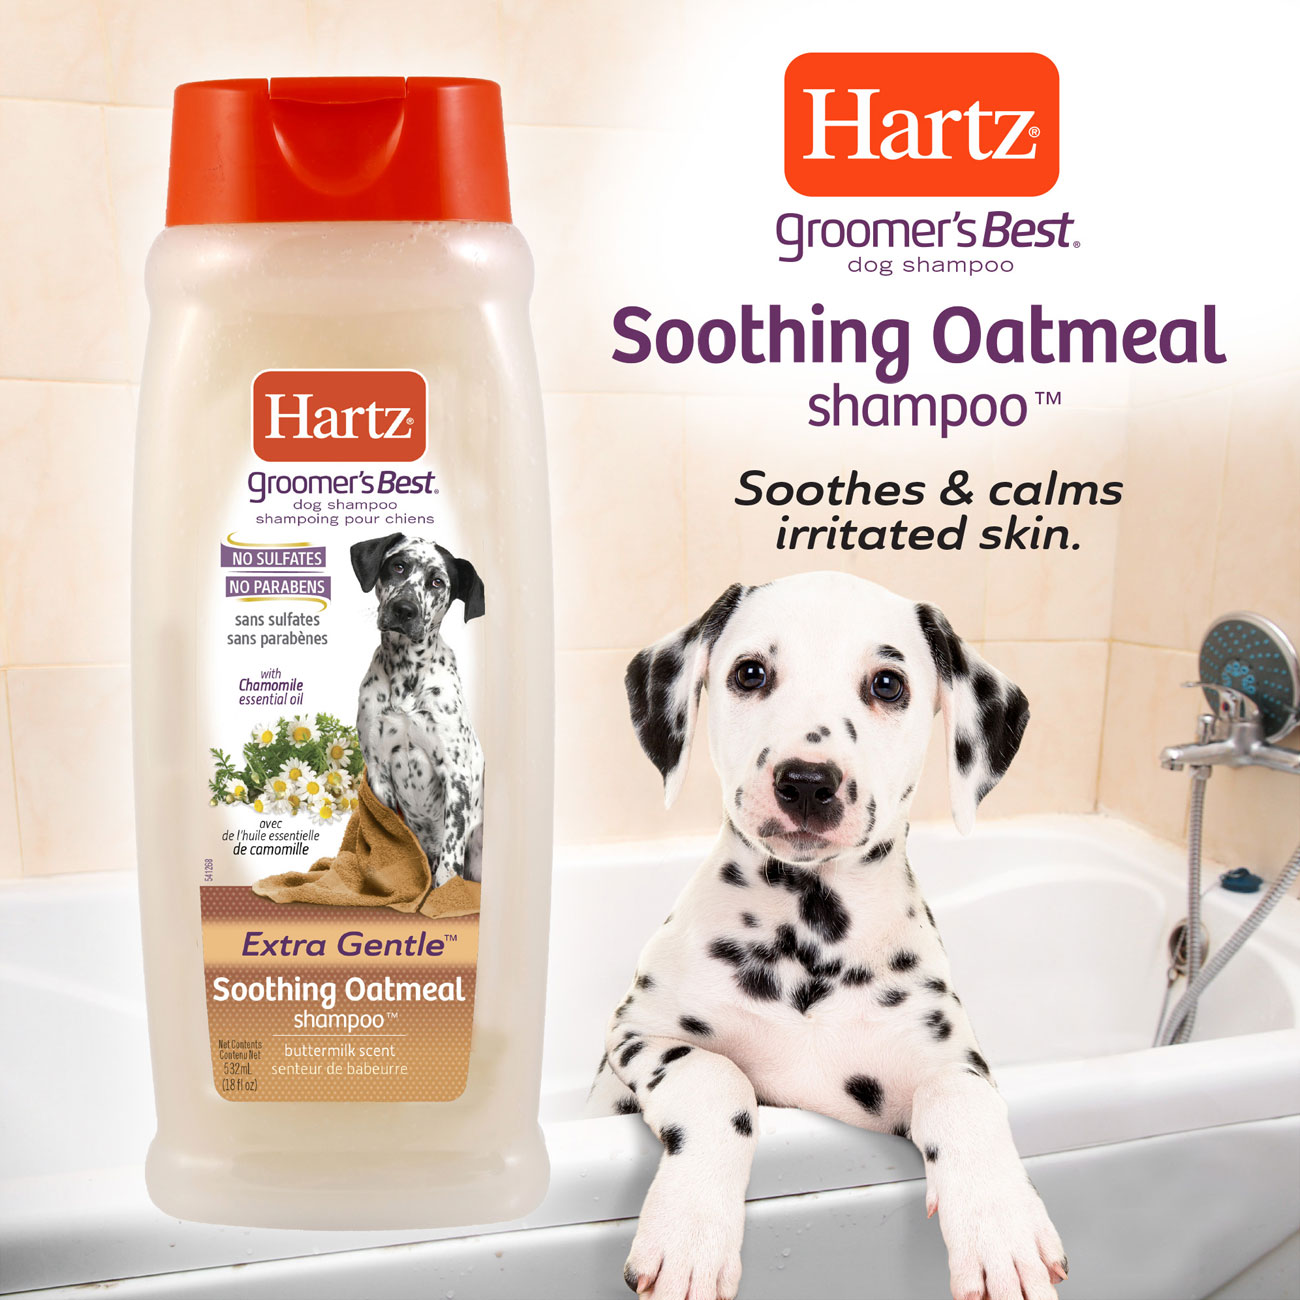 Hartz Groomer's Best soothing oatmeal shampoo. Soothes and calms irritated skin.